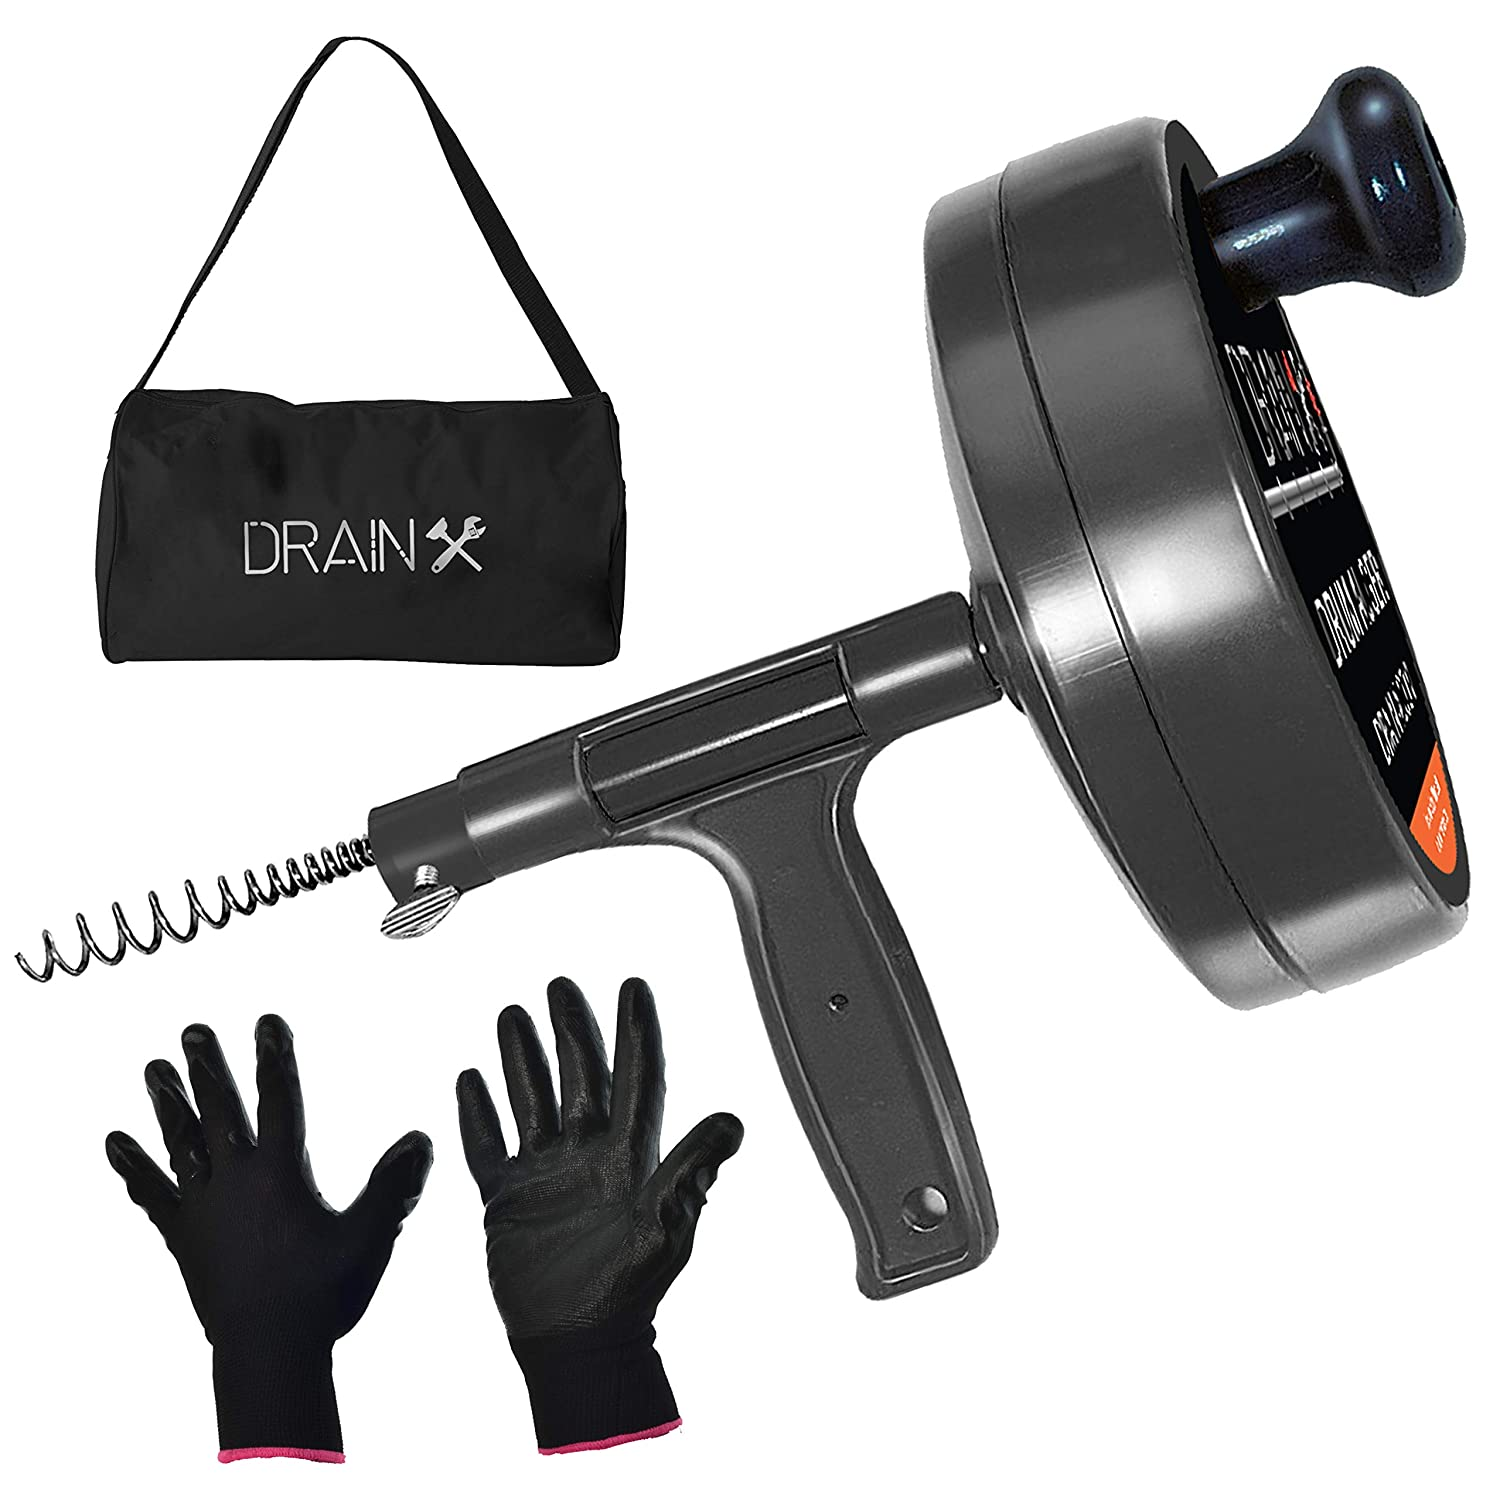 Drainx Pro Steel Drum Auger Plumbing Snake | Heavy Duty 25-Ft Drain Snake Cable with Work Gloves and Storage Bag EHX1-1012